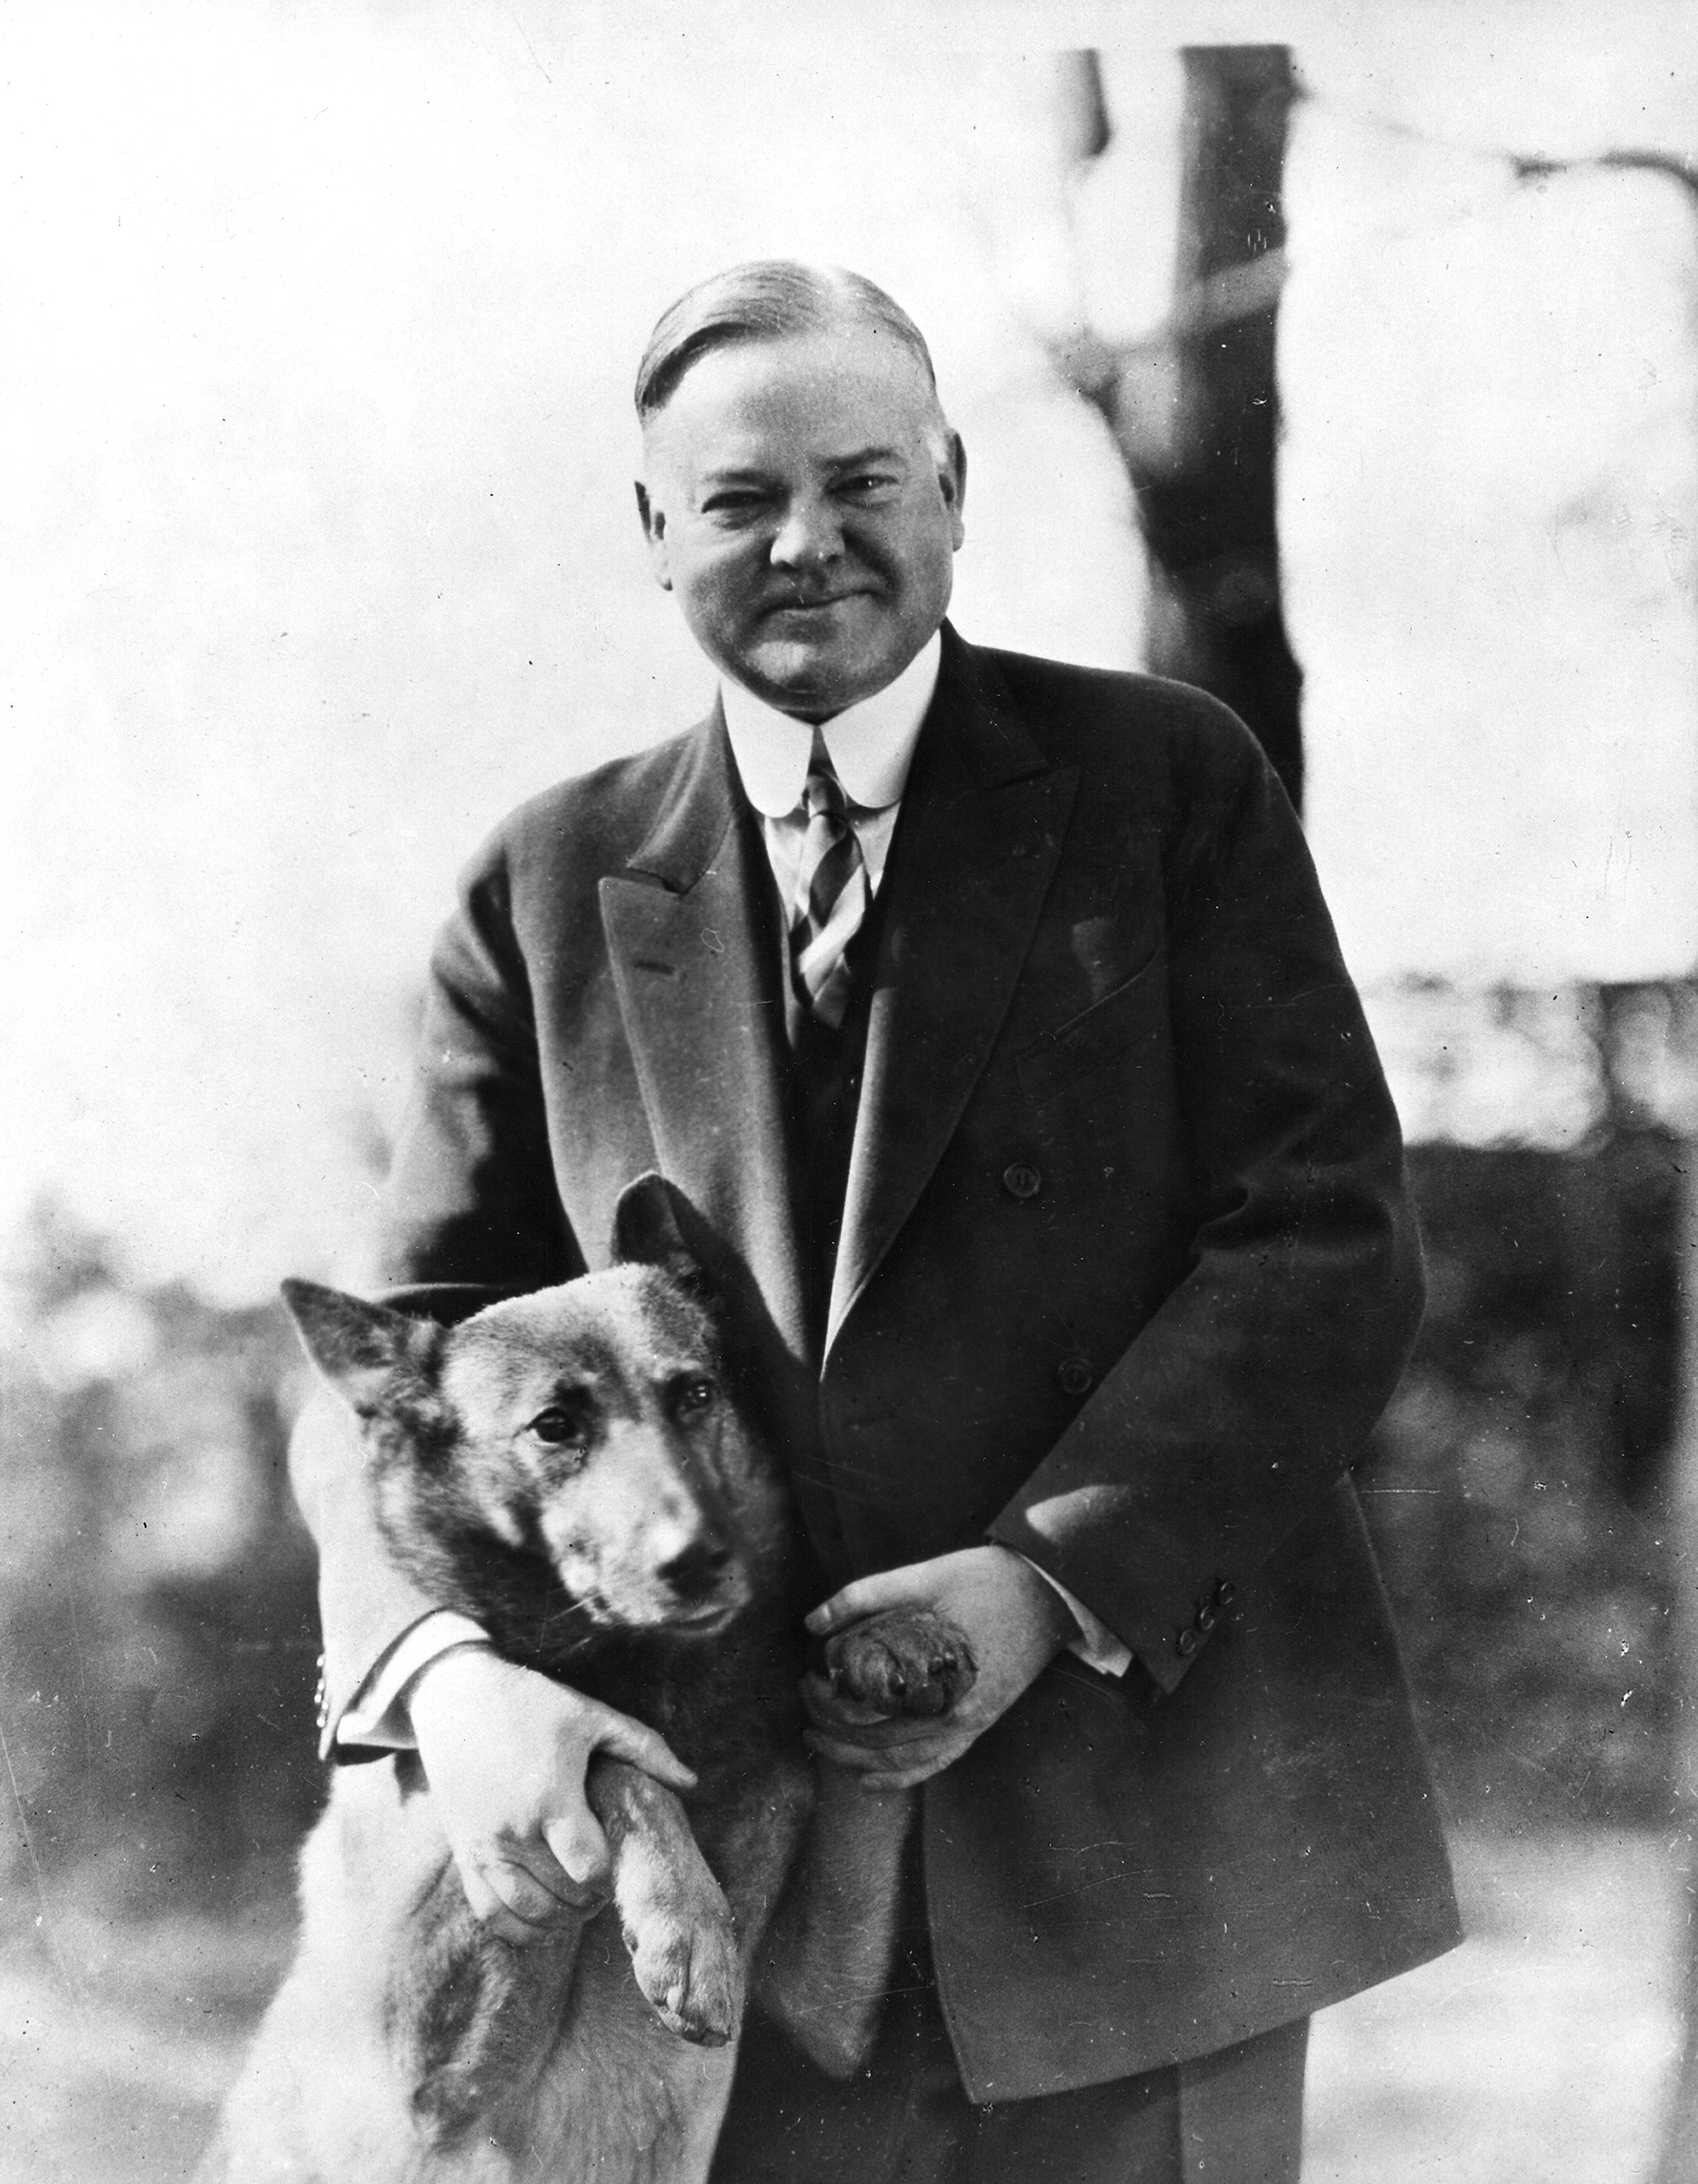 Herbert Hoover poses with his pet dog, King Tut, in the 1930s.